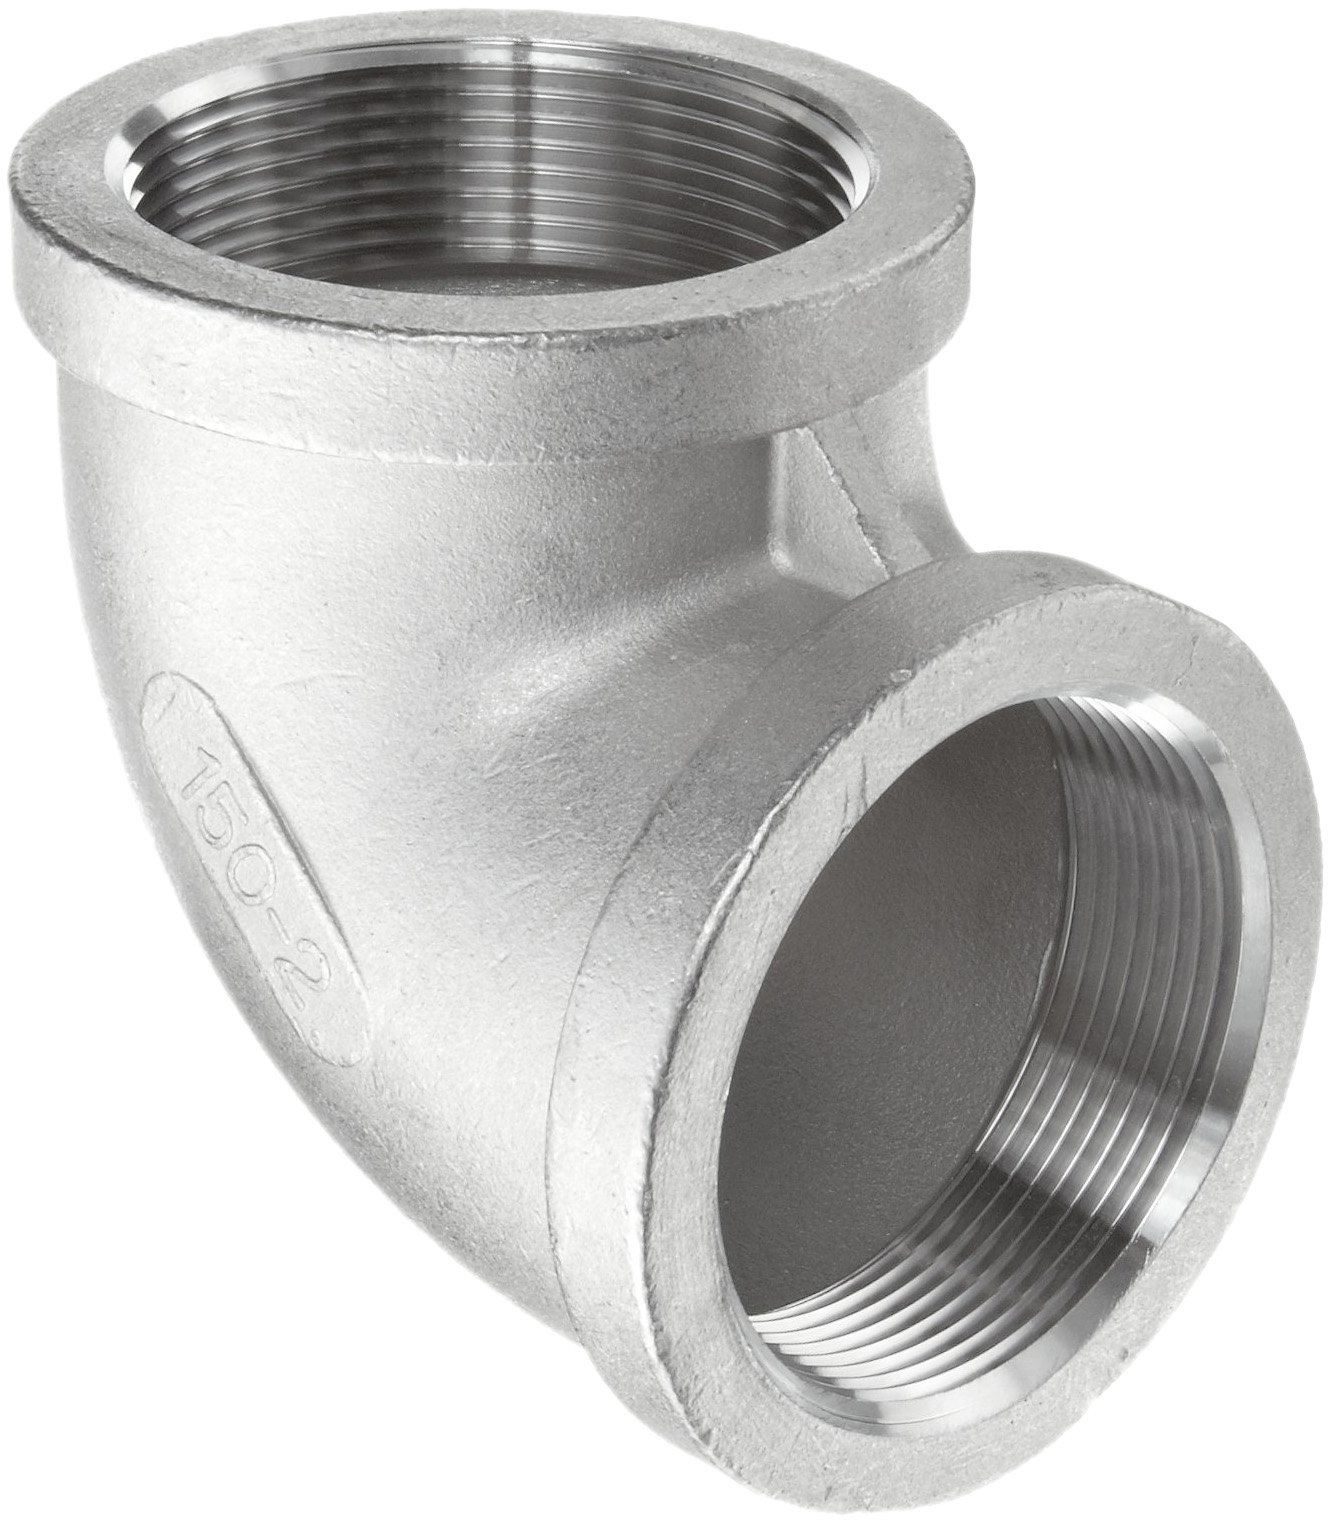 Stainless Steel 304 Cast Pipe Fitting, 90 Degree Elbow, MSS SP-114, 4'' NPT Female